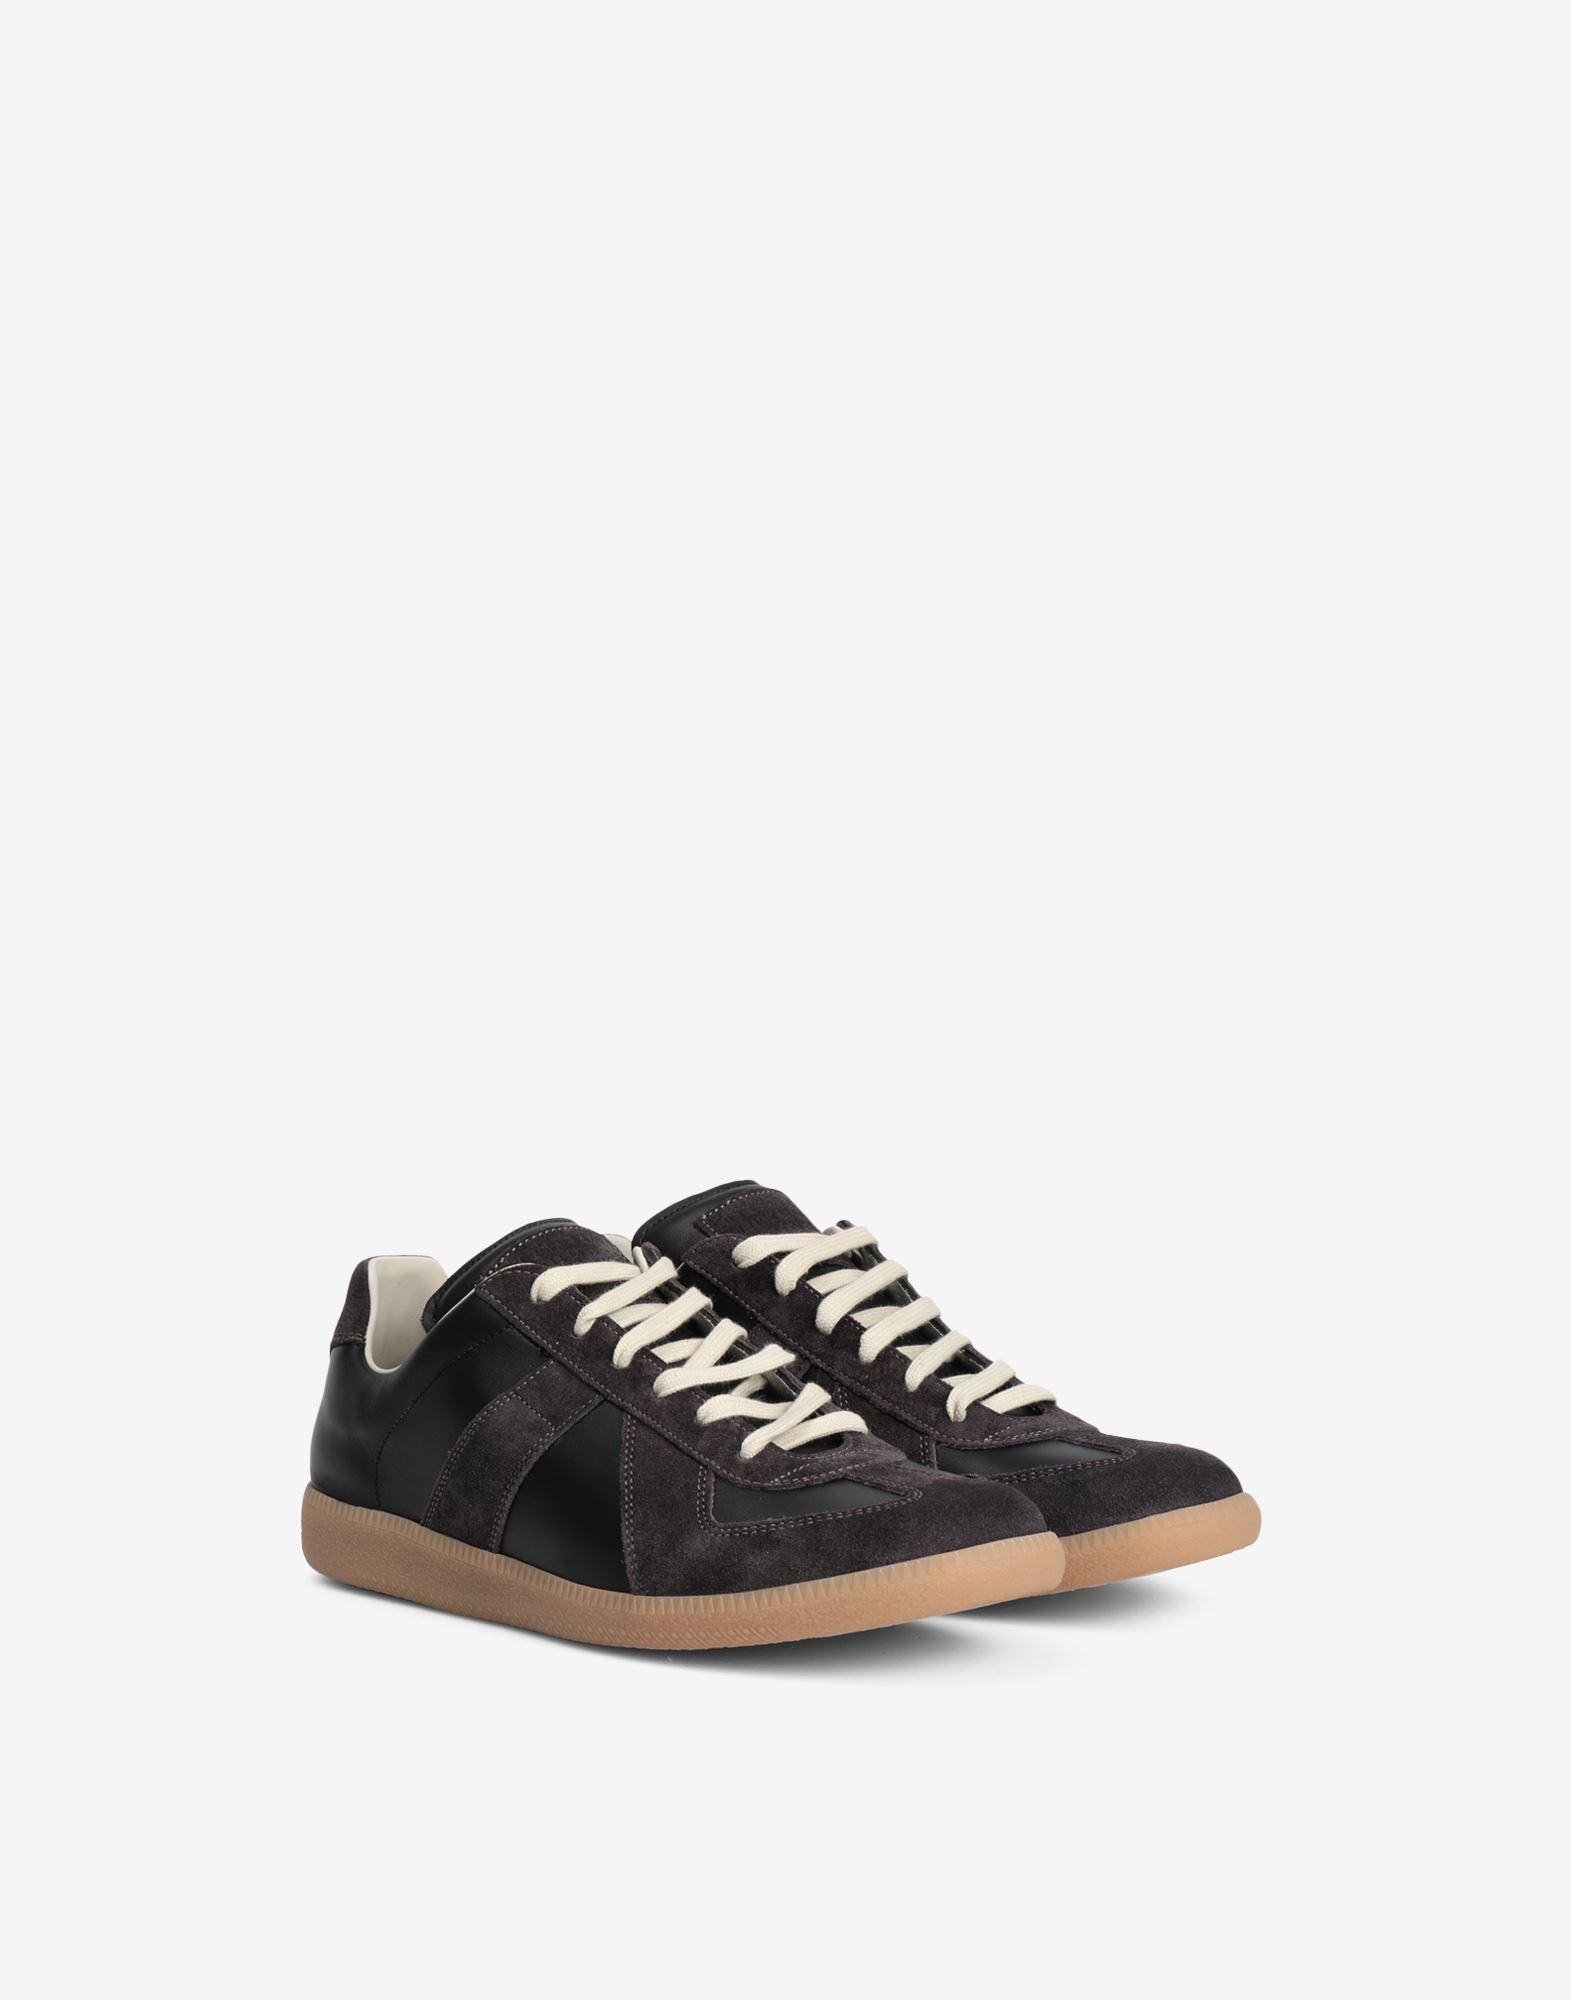 MAISON MARGIELA Low-top 'Replica' sneaker Sneakers Man d